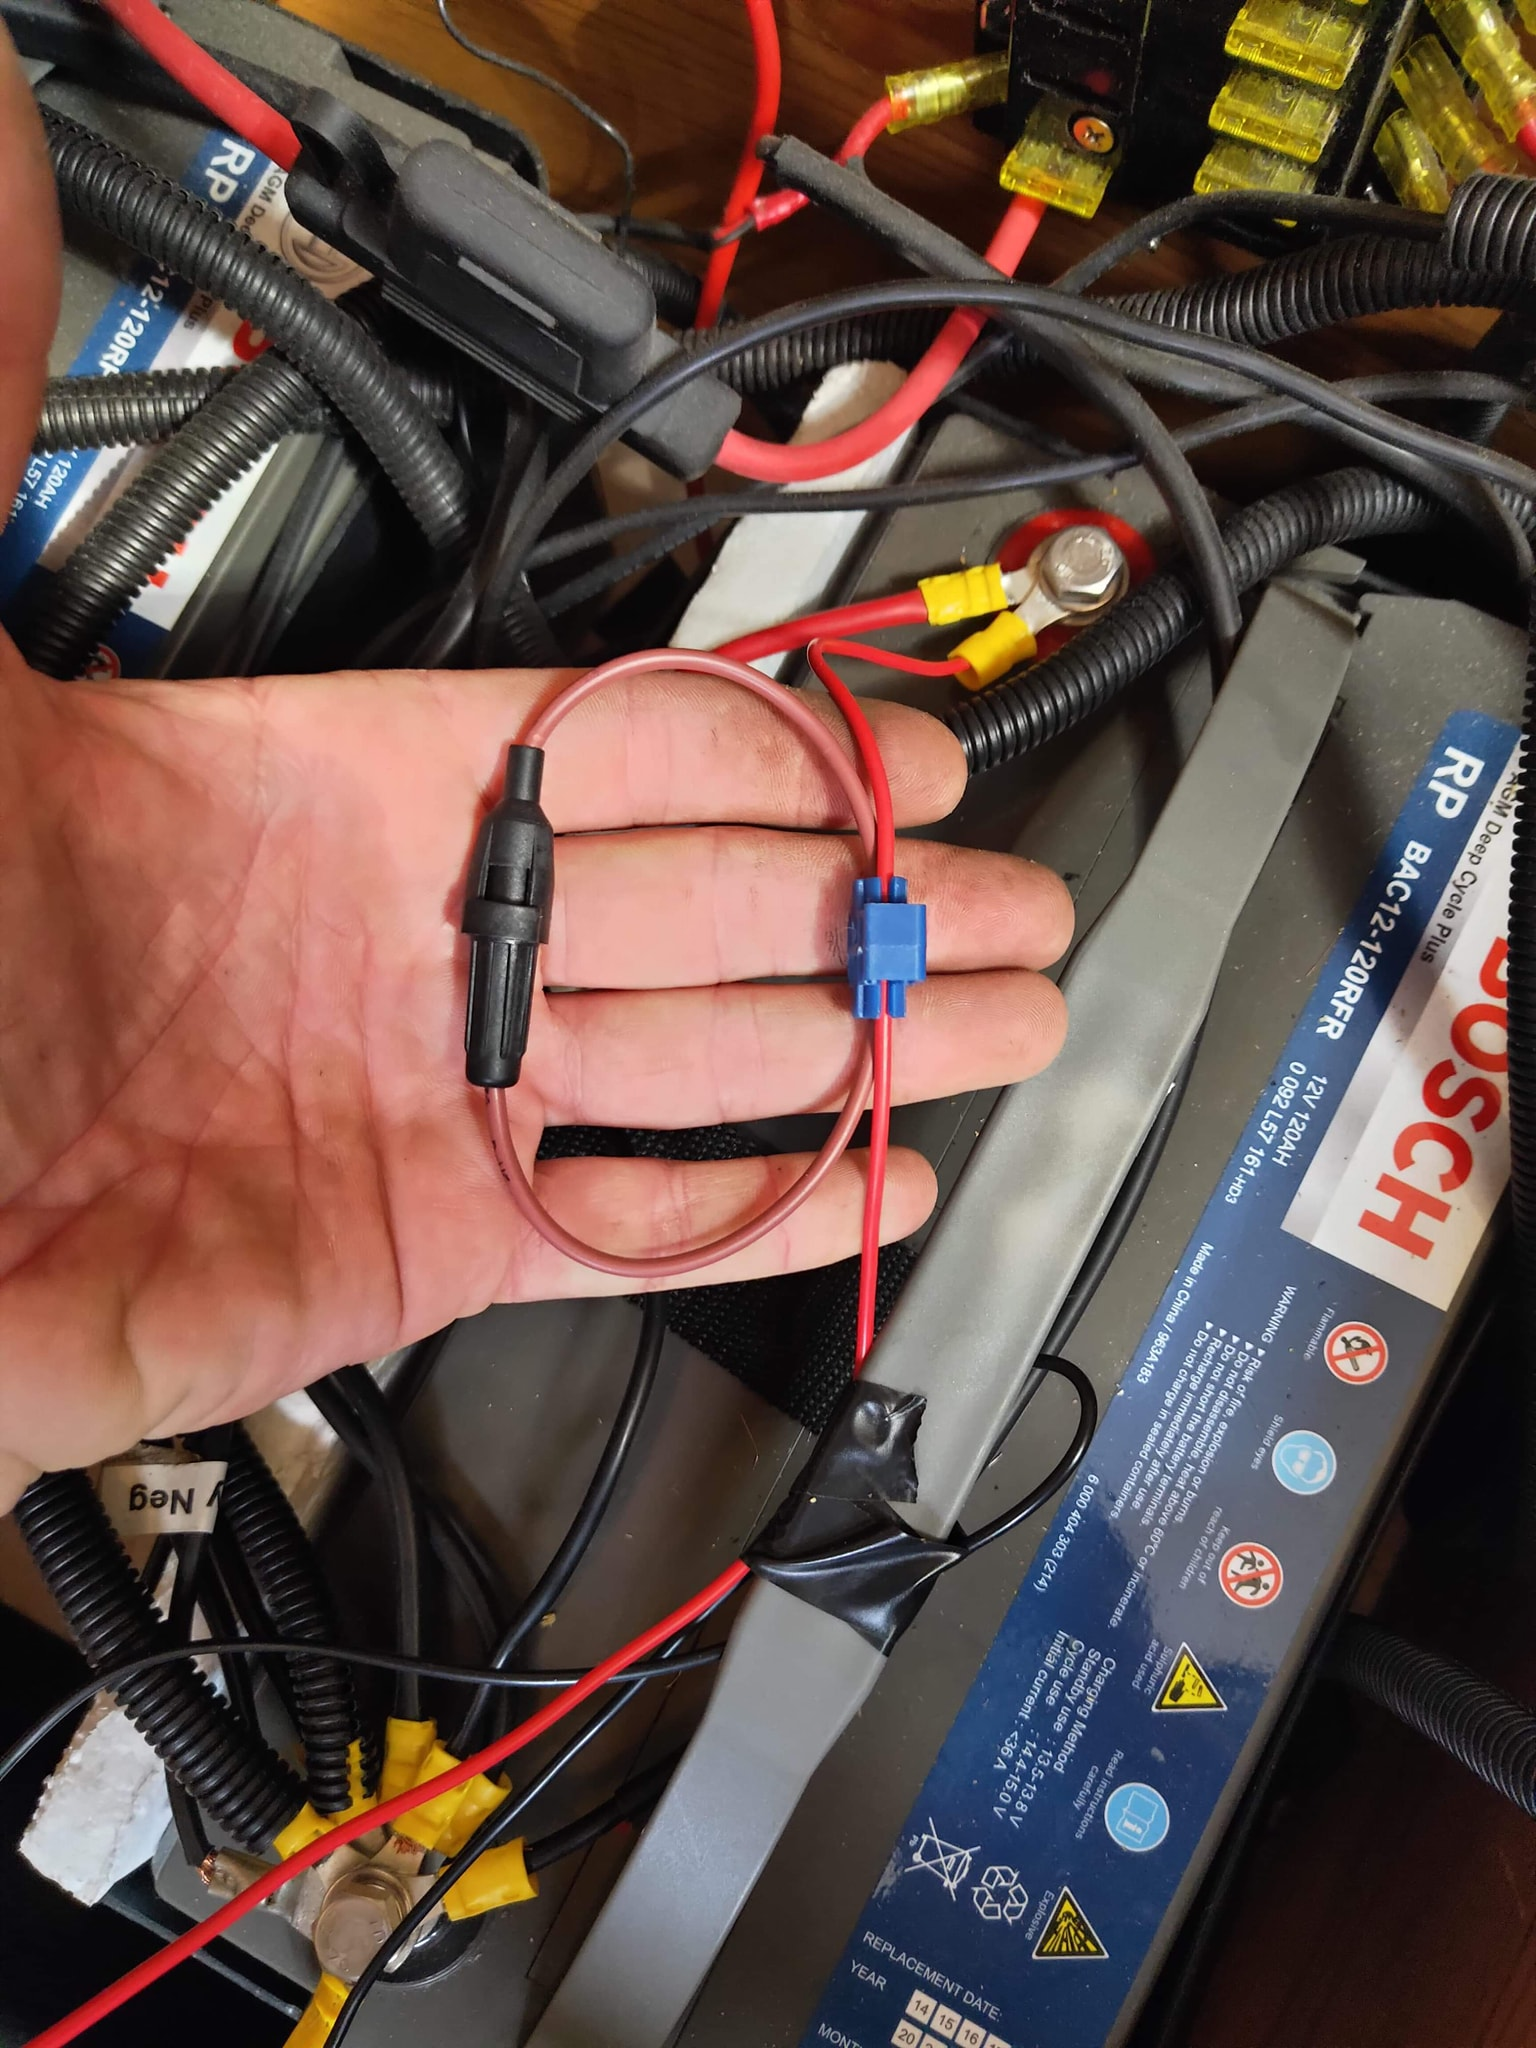 Quick tip – Have your RV electrical wiring checked professionally.